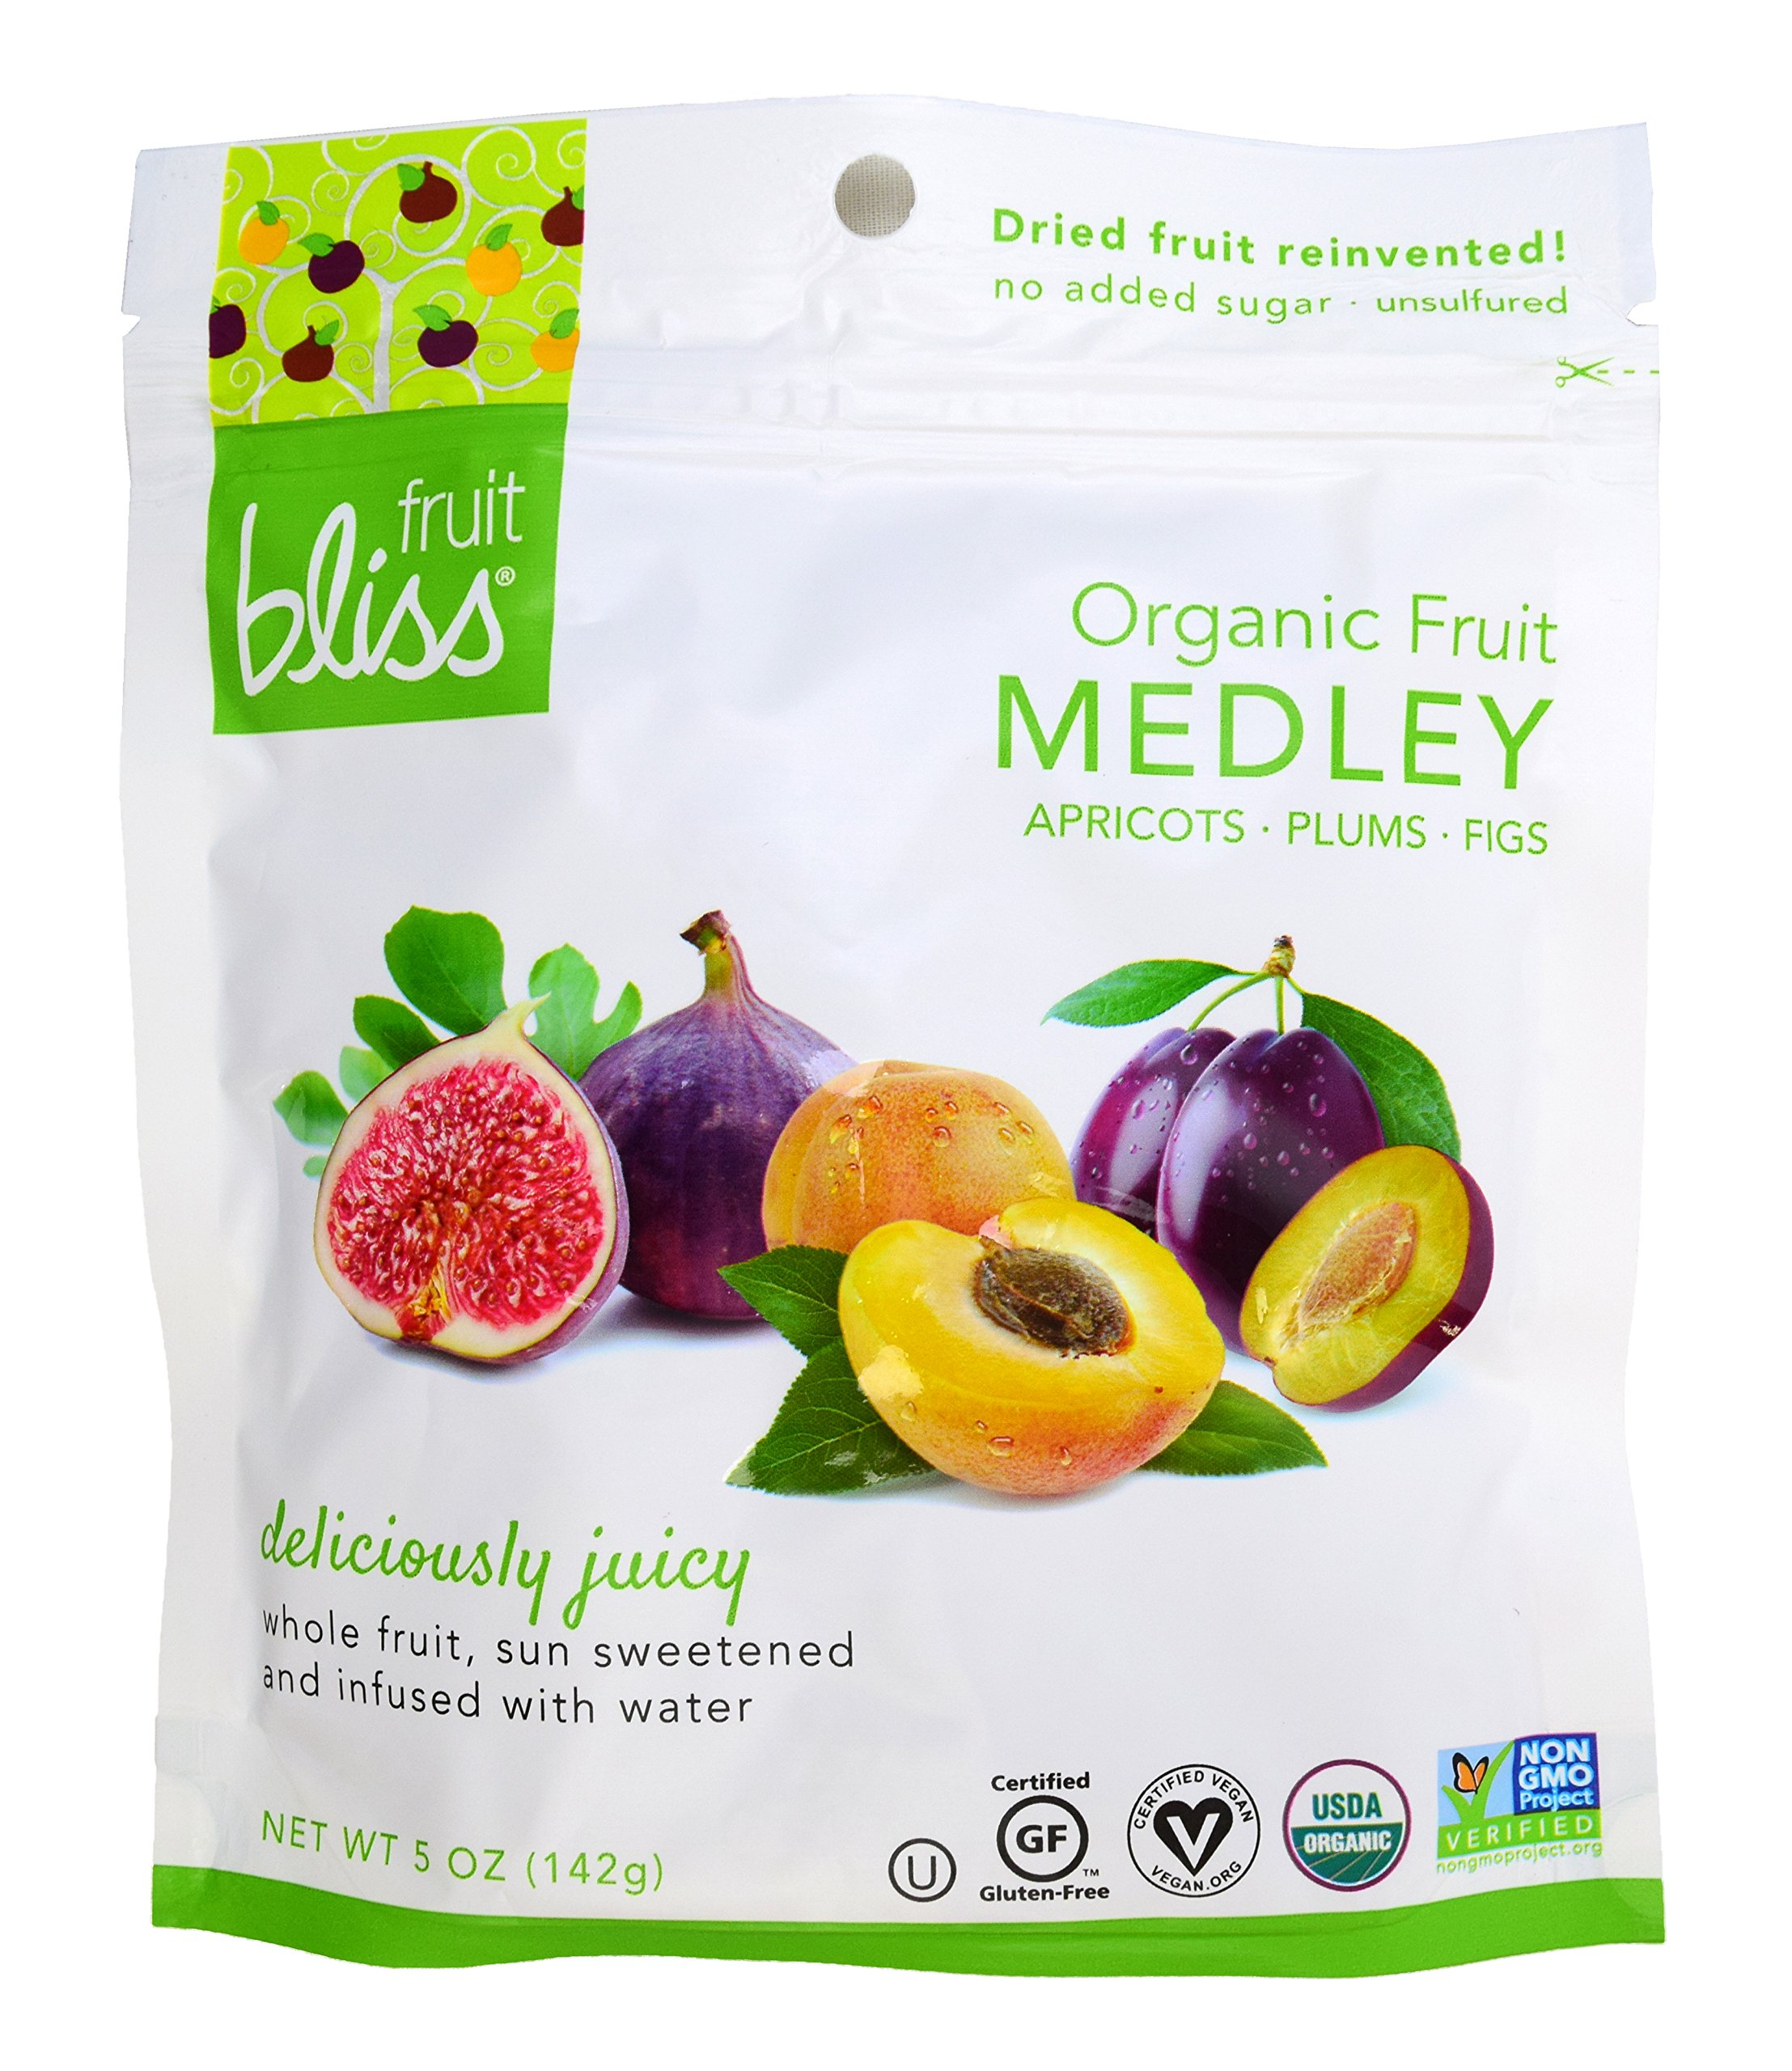 Fruit Bliss Organic Dried Fruit Medley, 5 oz, Pack of 6 by FRUIT BLISS (Image #1)